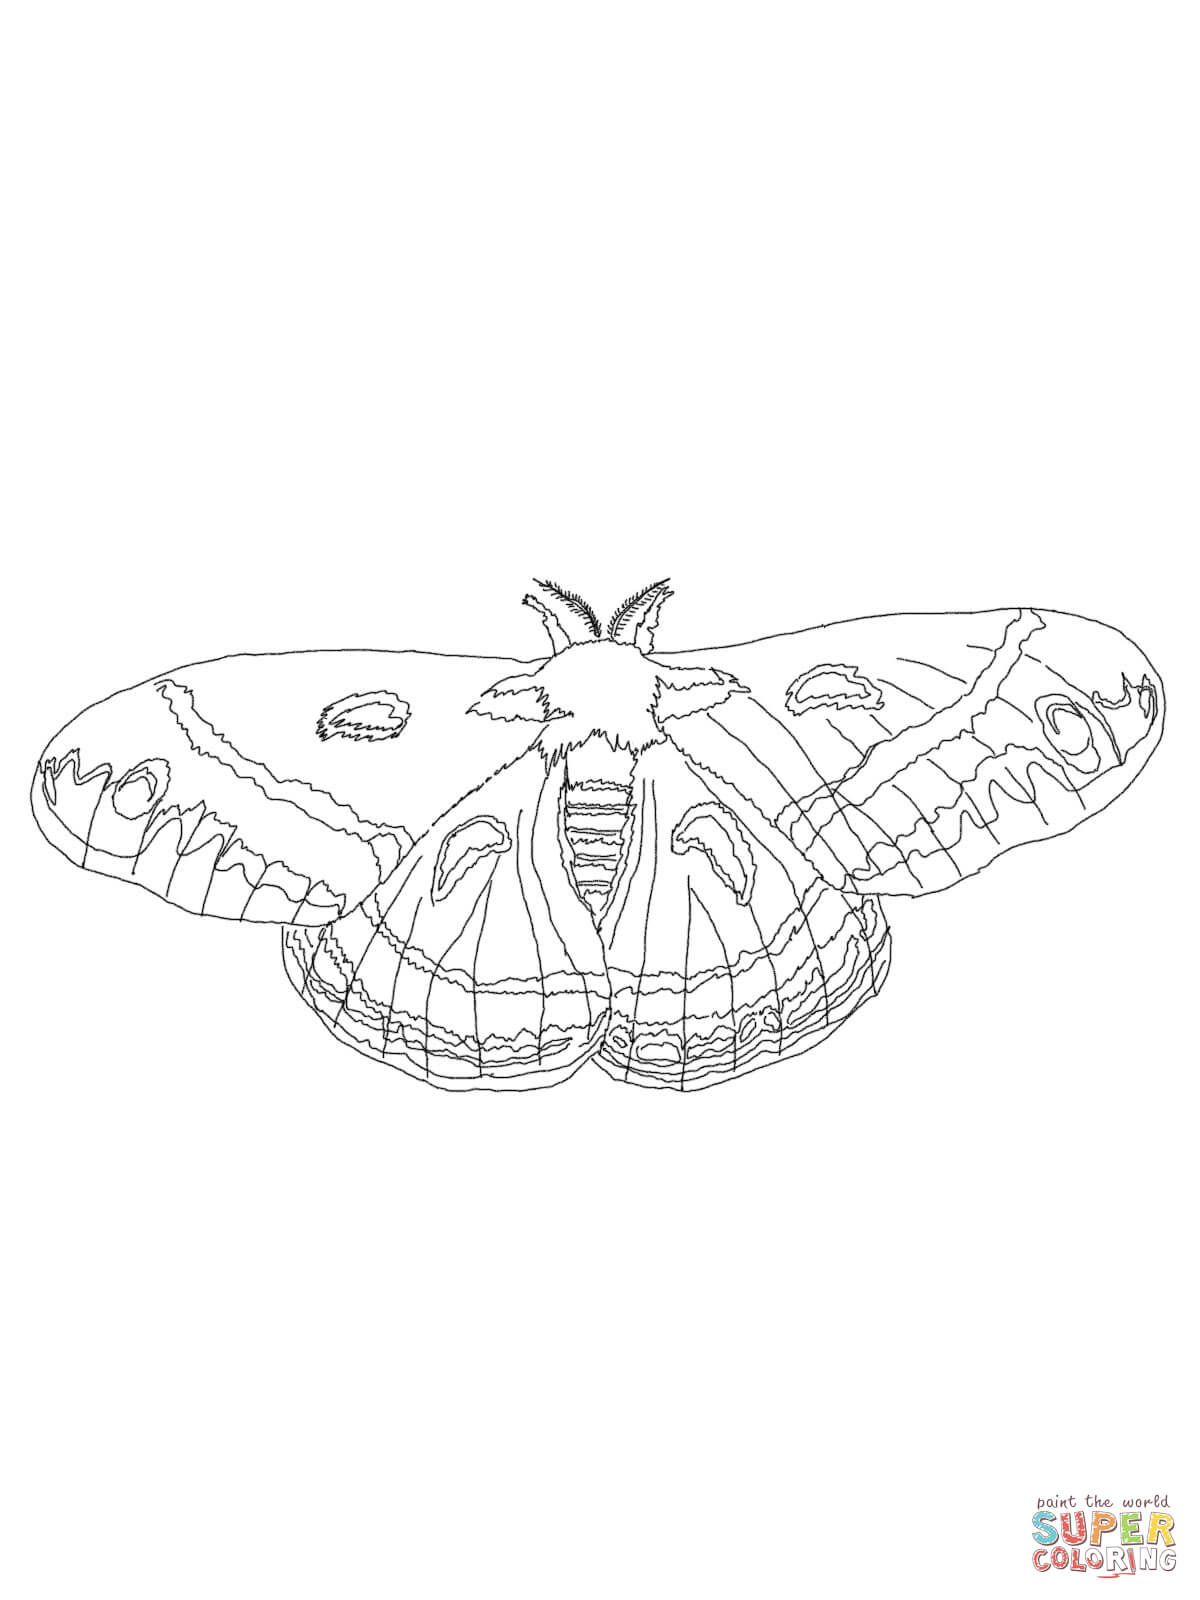 Cecropia Moth Coloring Page From Moth Category Select From 28264 Printable Crafts Of Cartoons Natu Cecropia Moth Coloring Pages Free Printable Coloring Pages